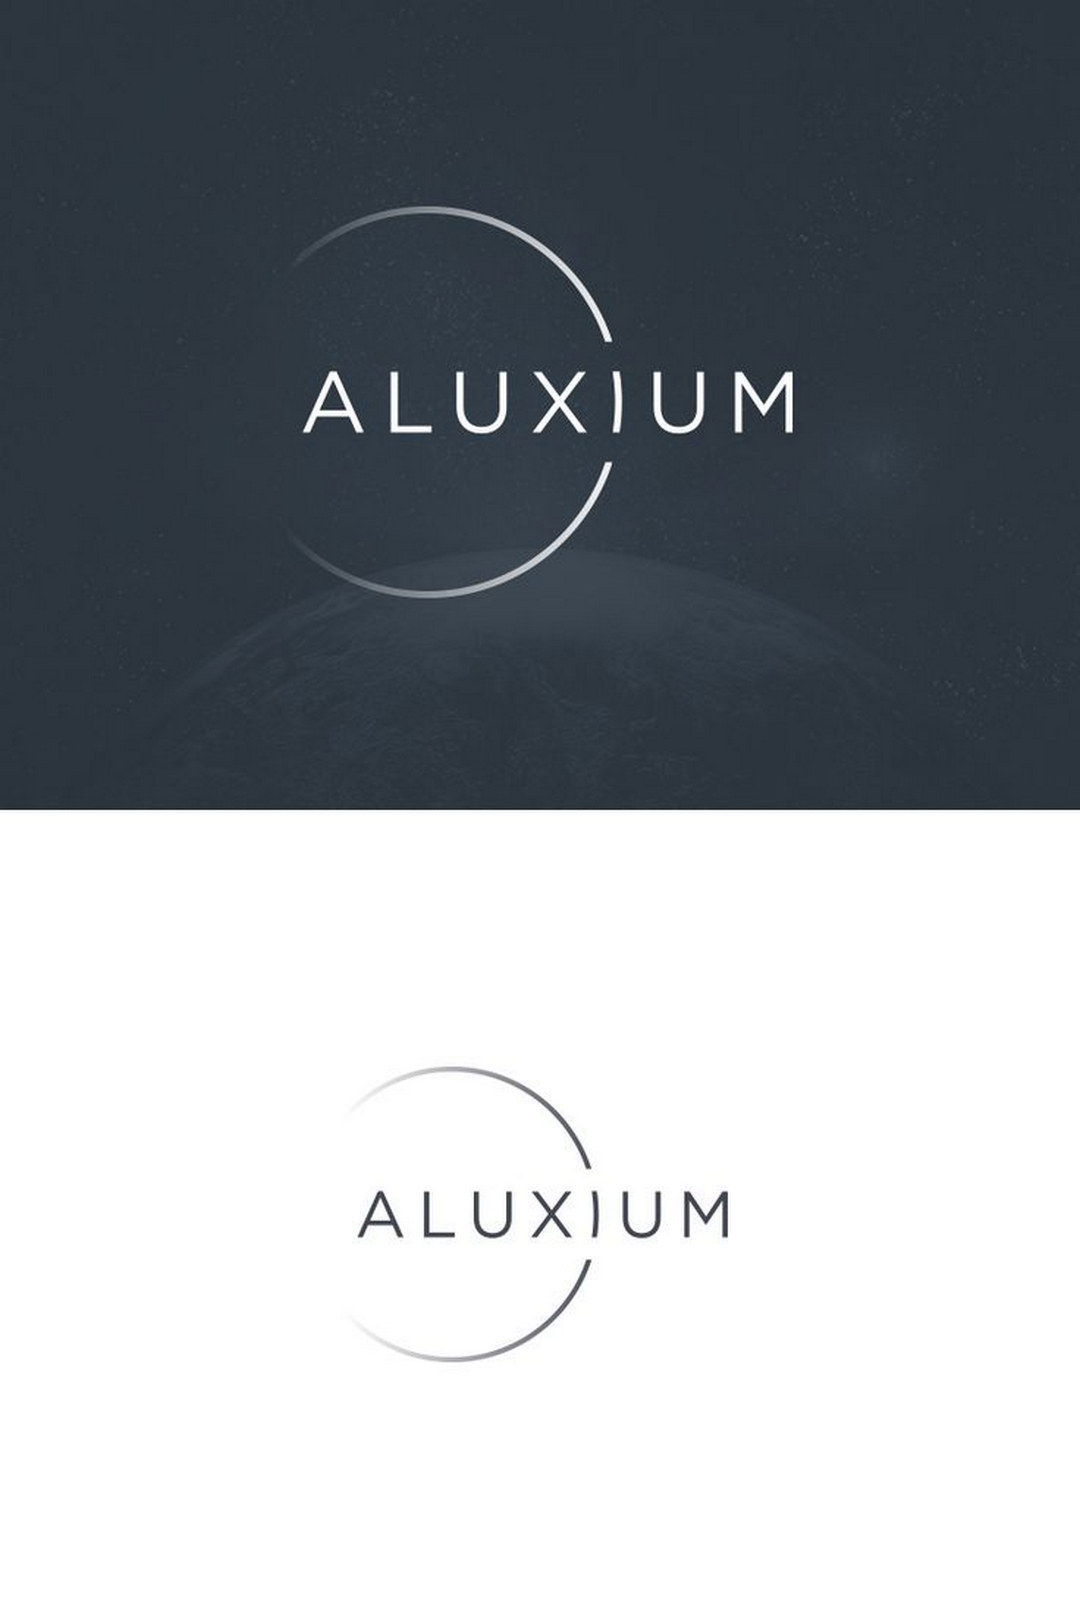 How to Create a Logo for Your Amazon Business Word mark